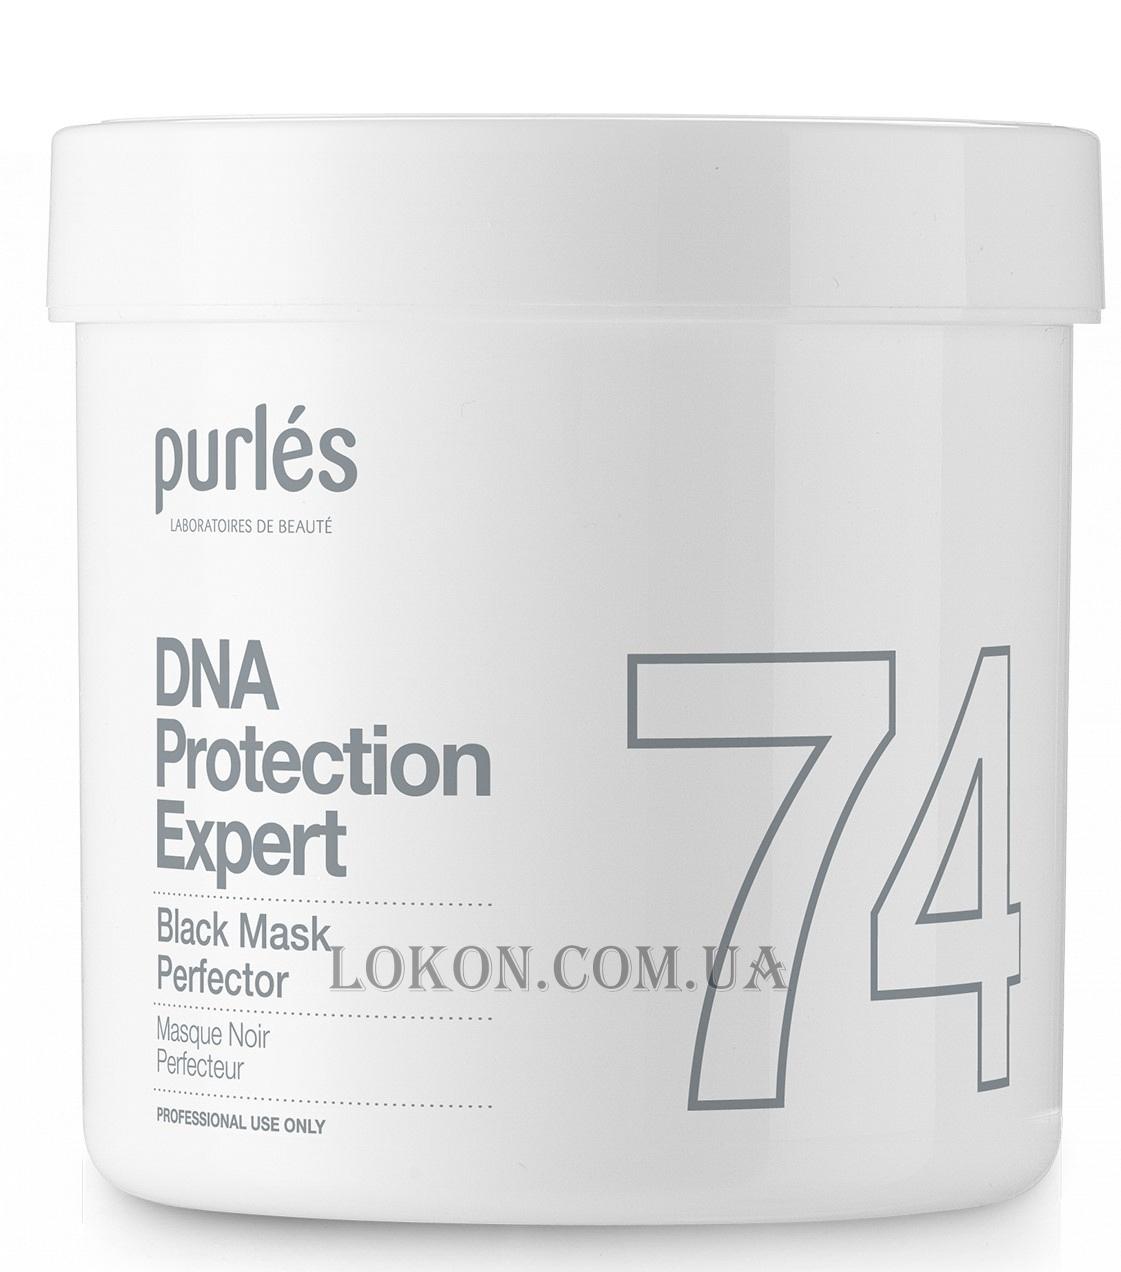 PURLÉS DNA Protection Expert 74 Black Mask Perfector - Чёрная маска